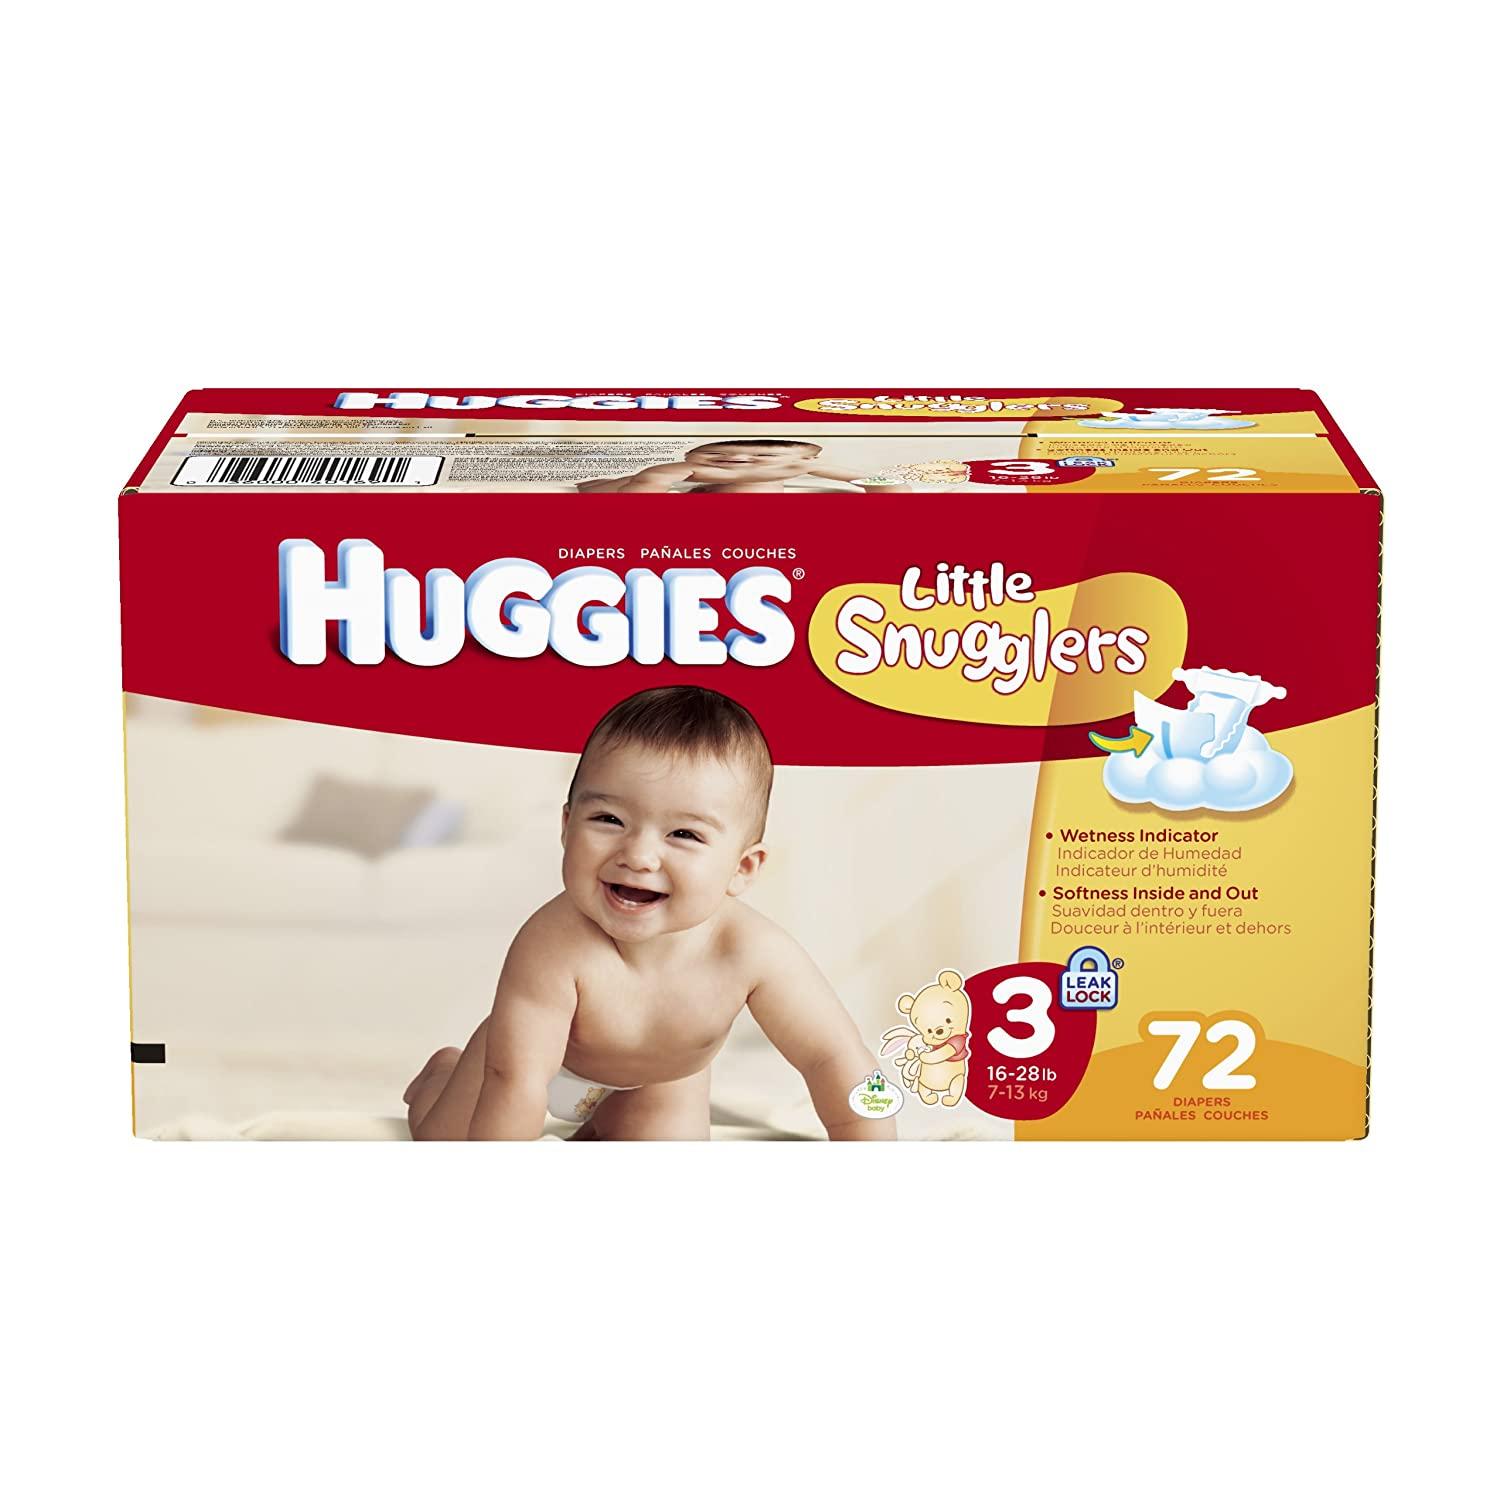 Amazon.com: Huggies Little Snugglers Diapers, Step 3, Big, 72 Count: Health & Personal Care